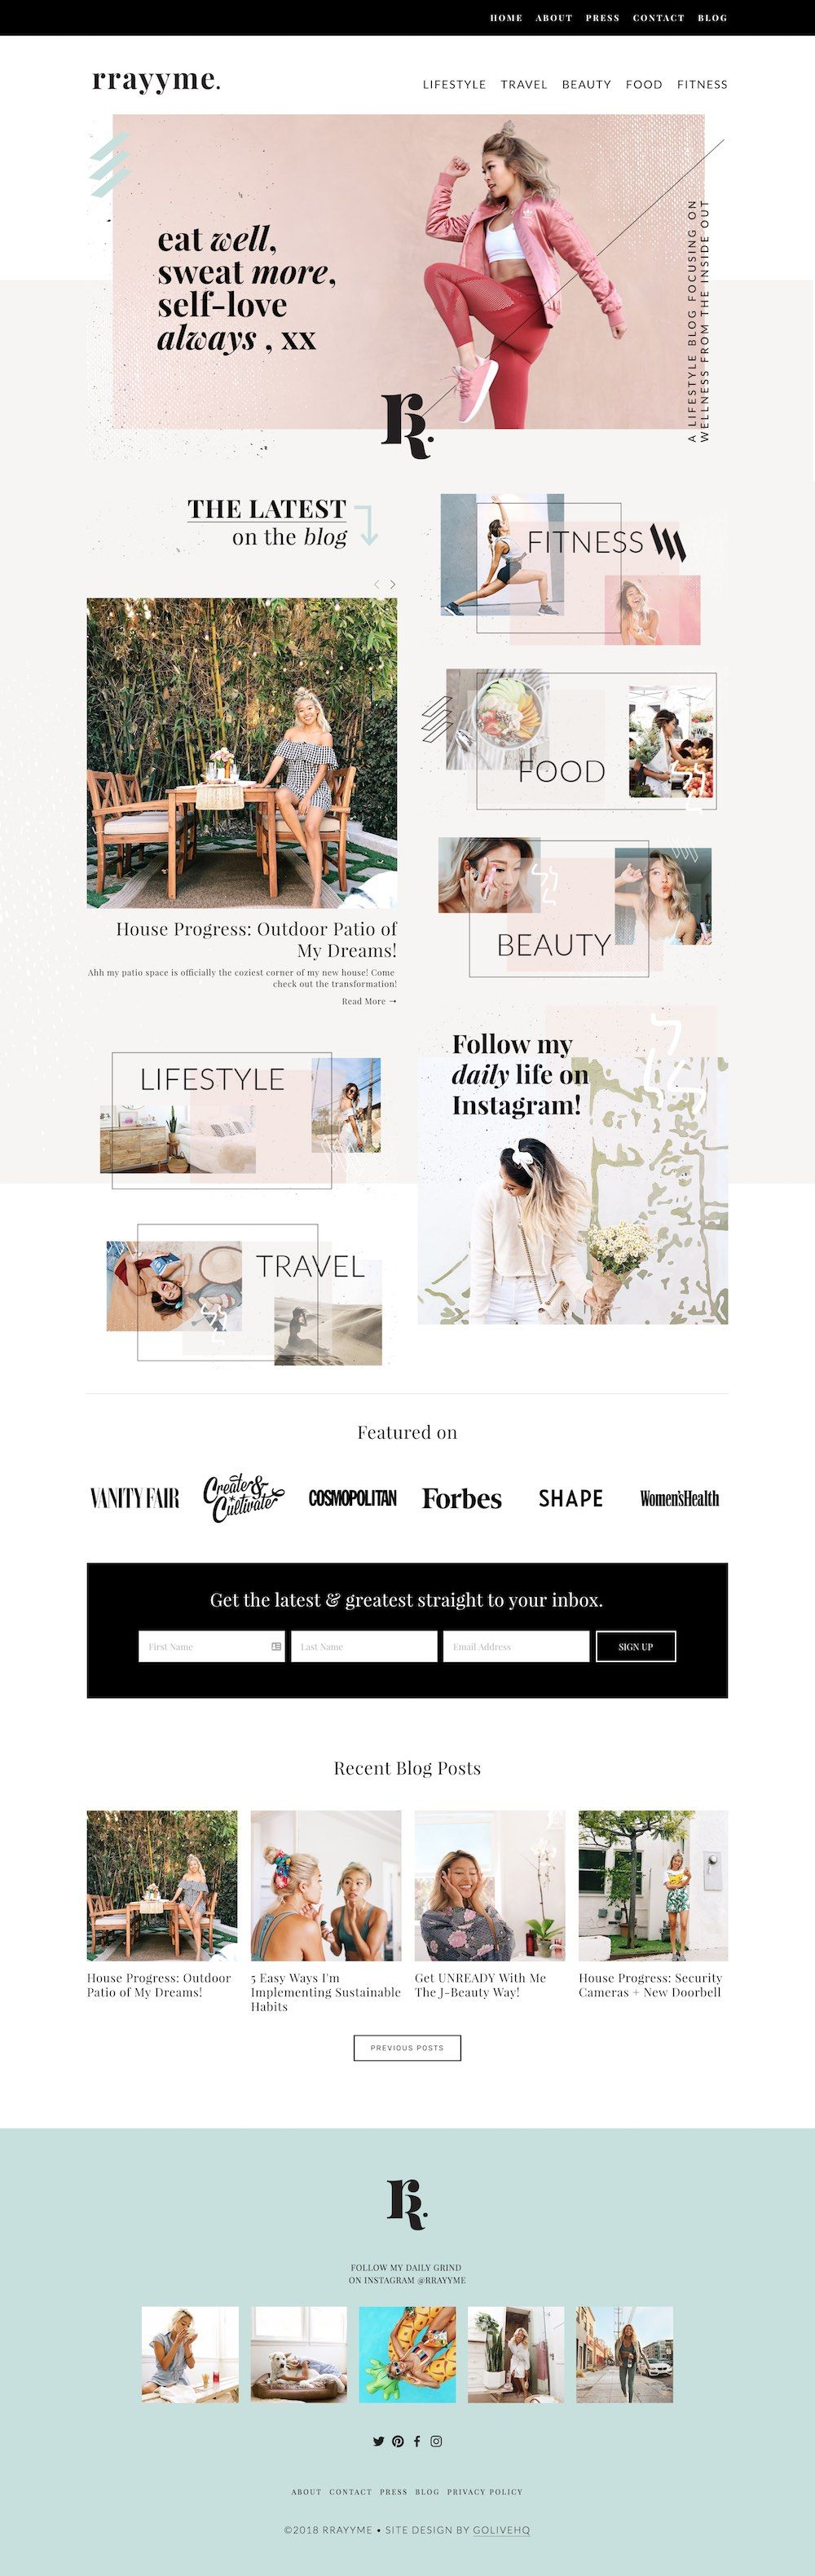 Top 10 Modern Edgy Squarespace Web Designs For Inspiration Big Cat Creative Squarespace Templates Squarespace Web Design Web Design Web Design Inspiration